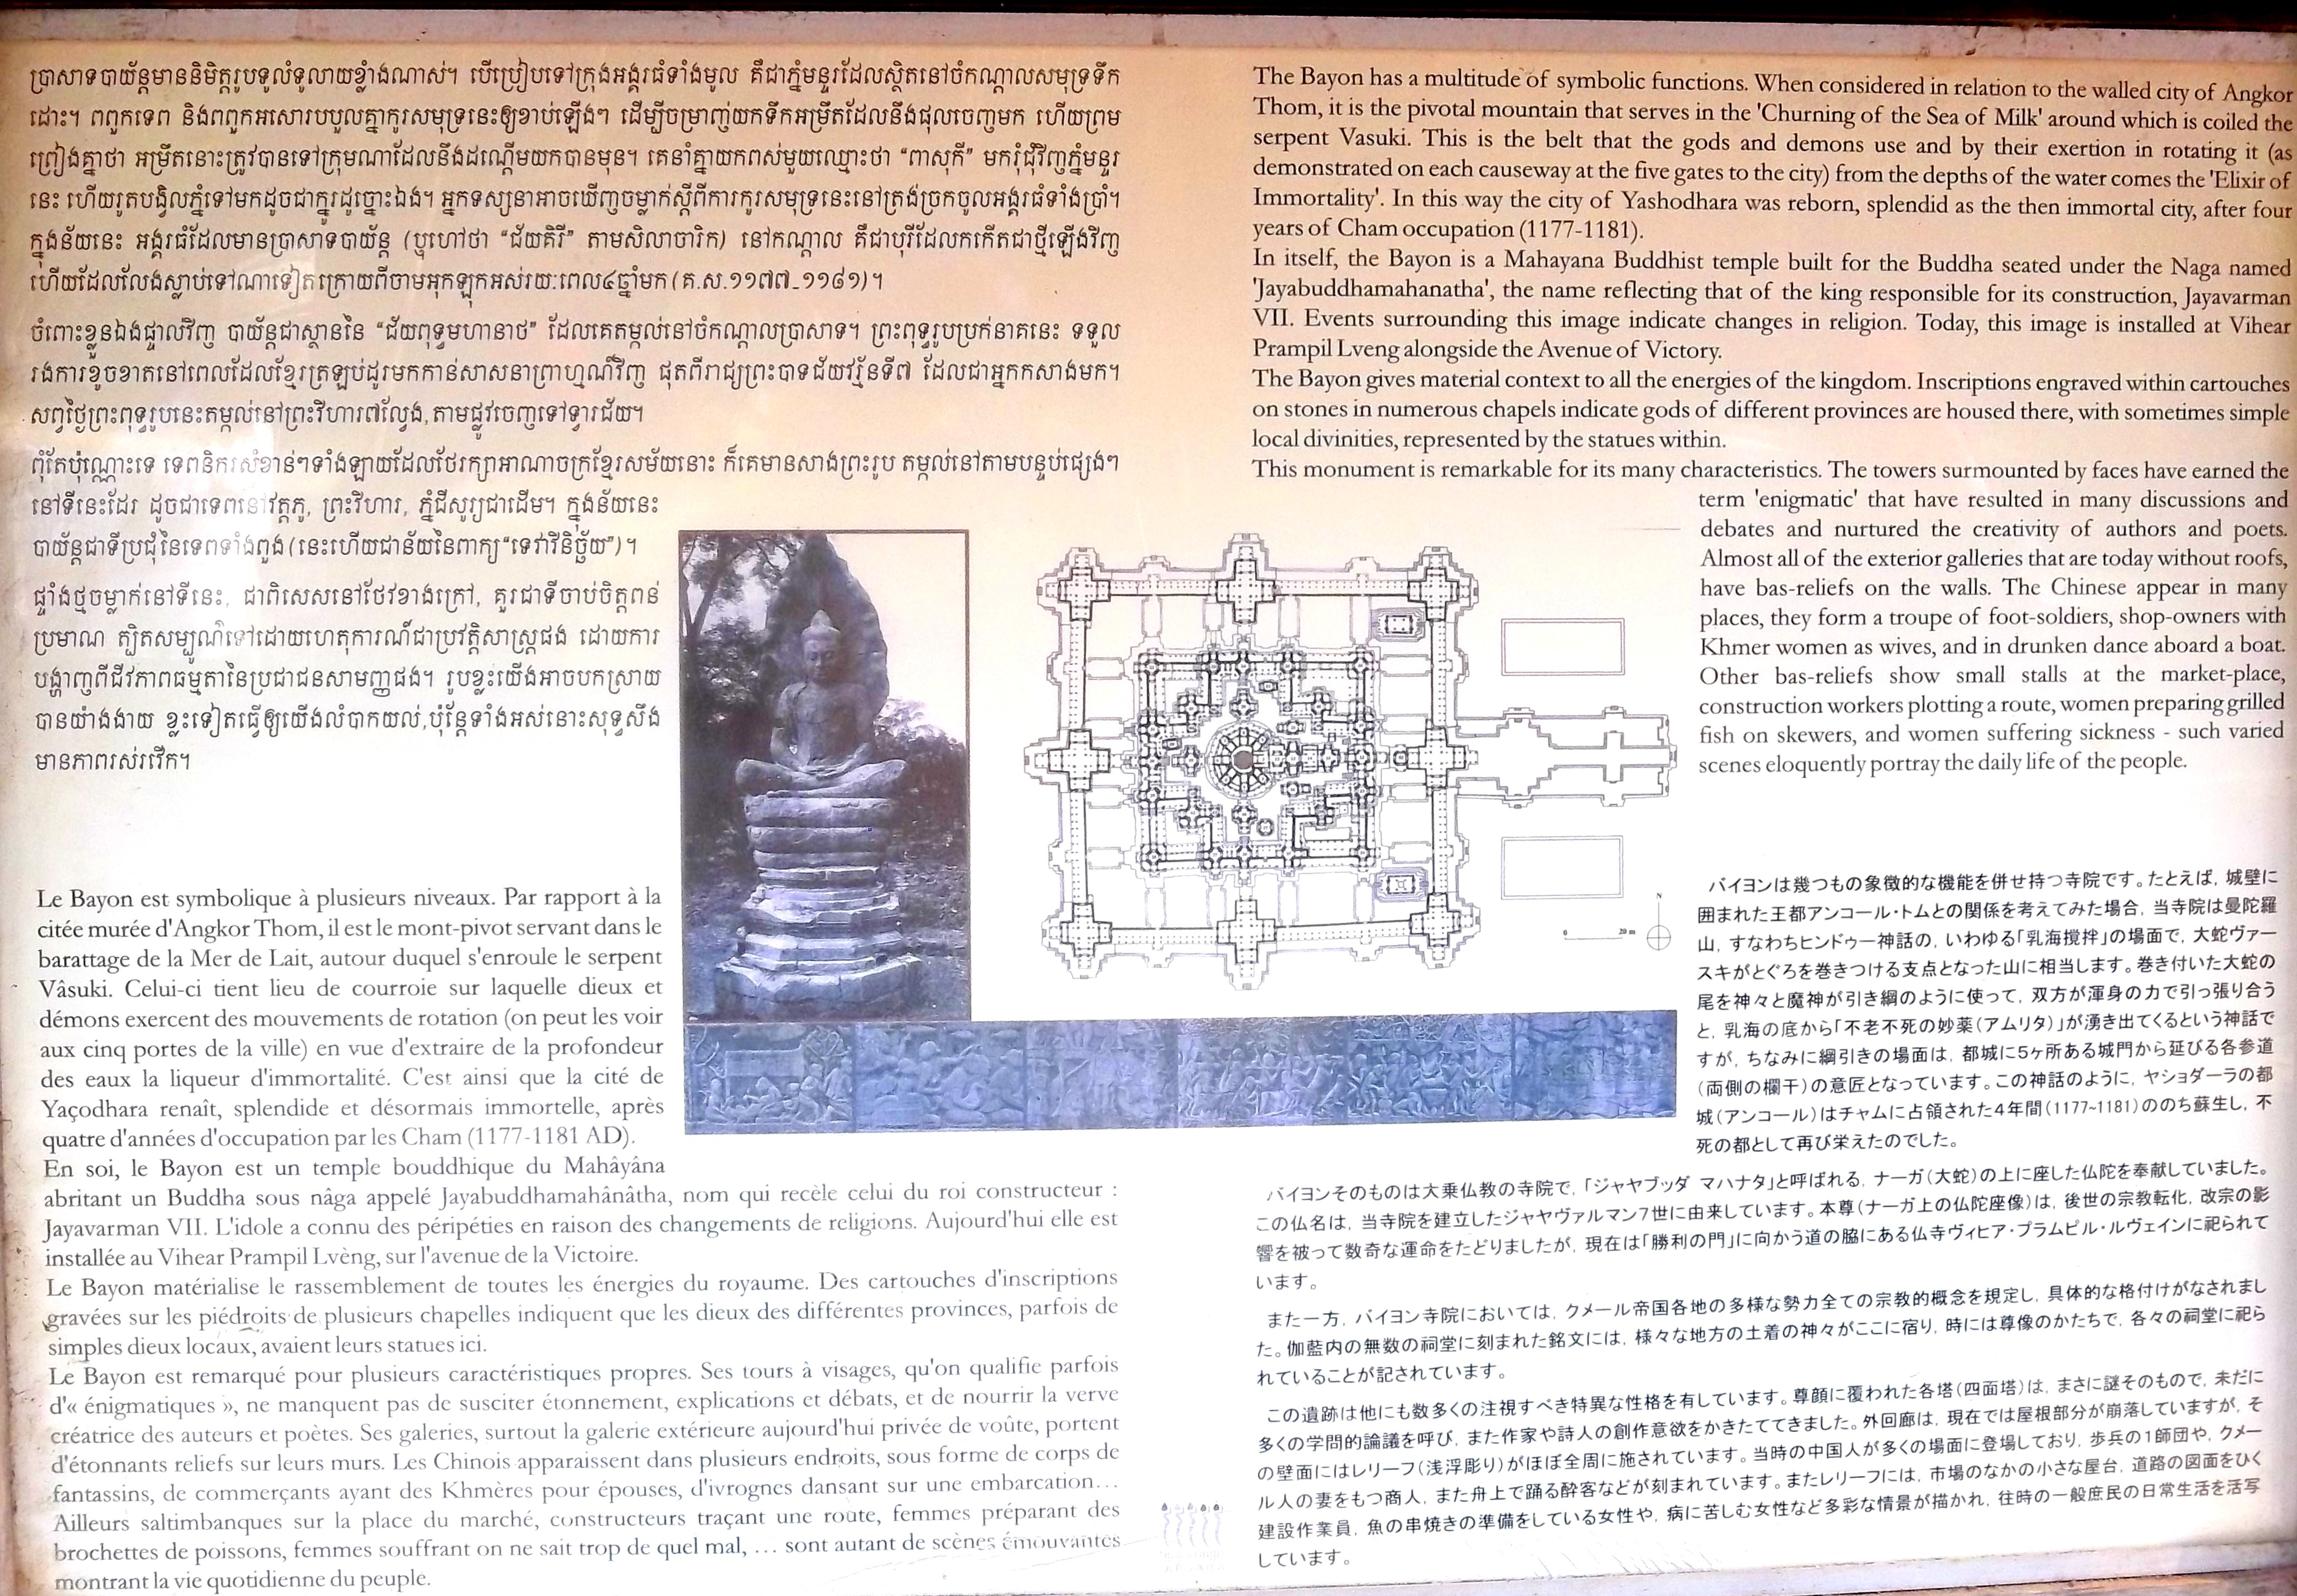 Description of Bayon Temple within Angkor Thom Complex - Angkor Wat, Cambodia